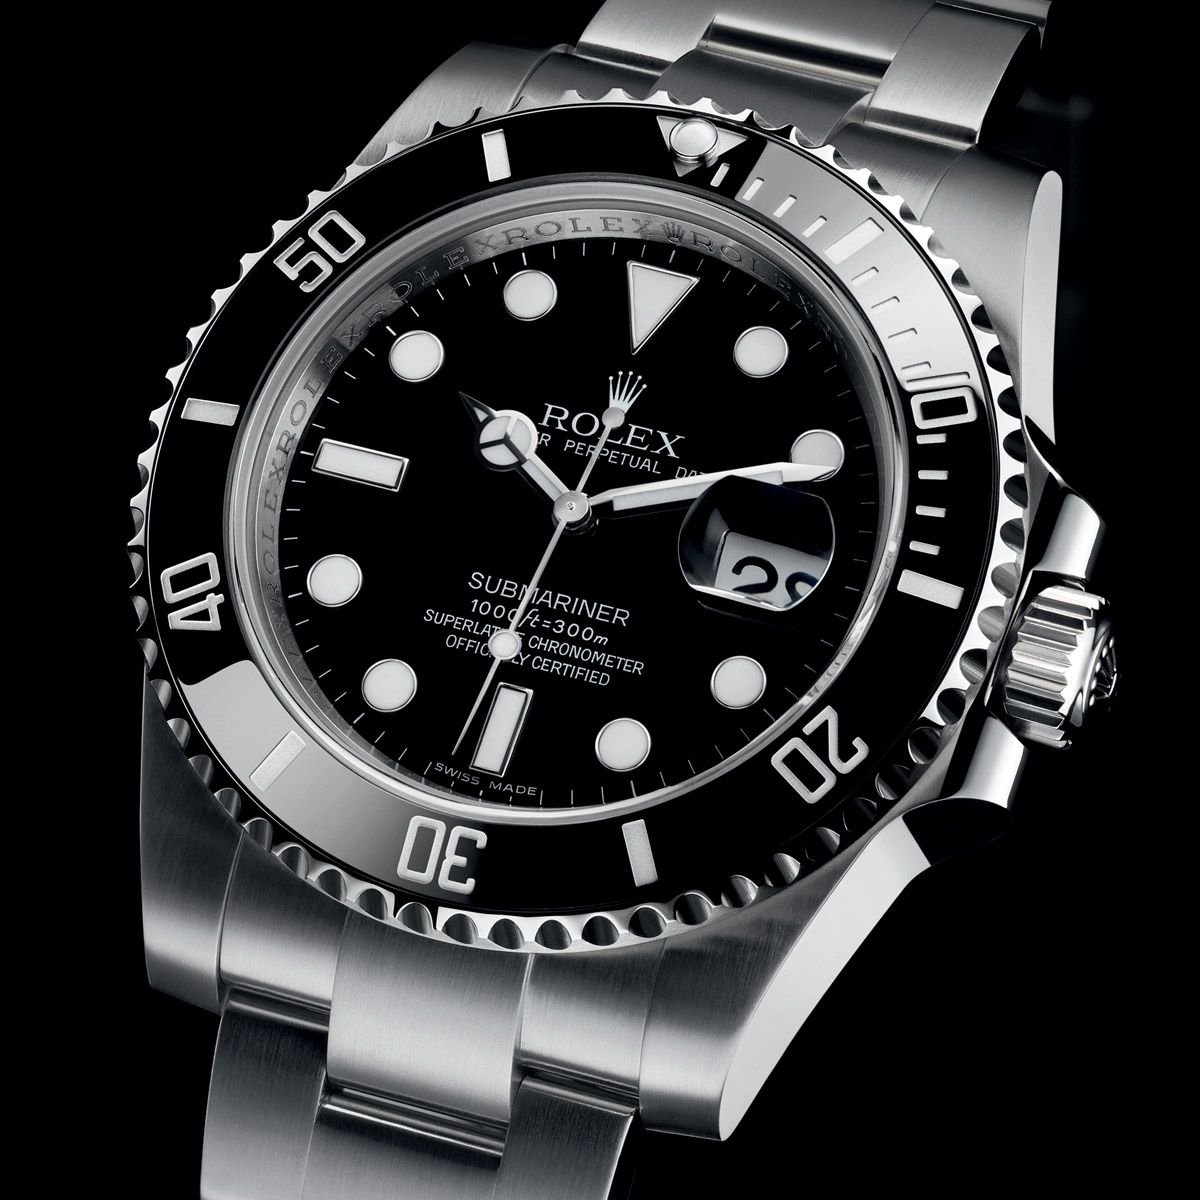 acefce42757 The Watch Quote  Photo - Rolex Oyster Perpetual Submariner Date ...